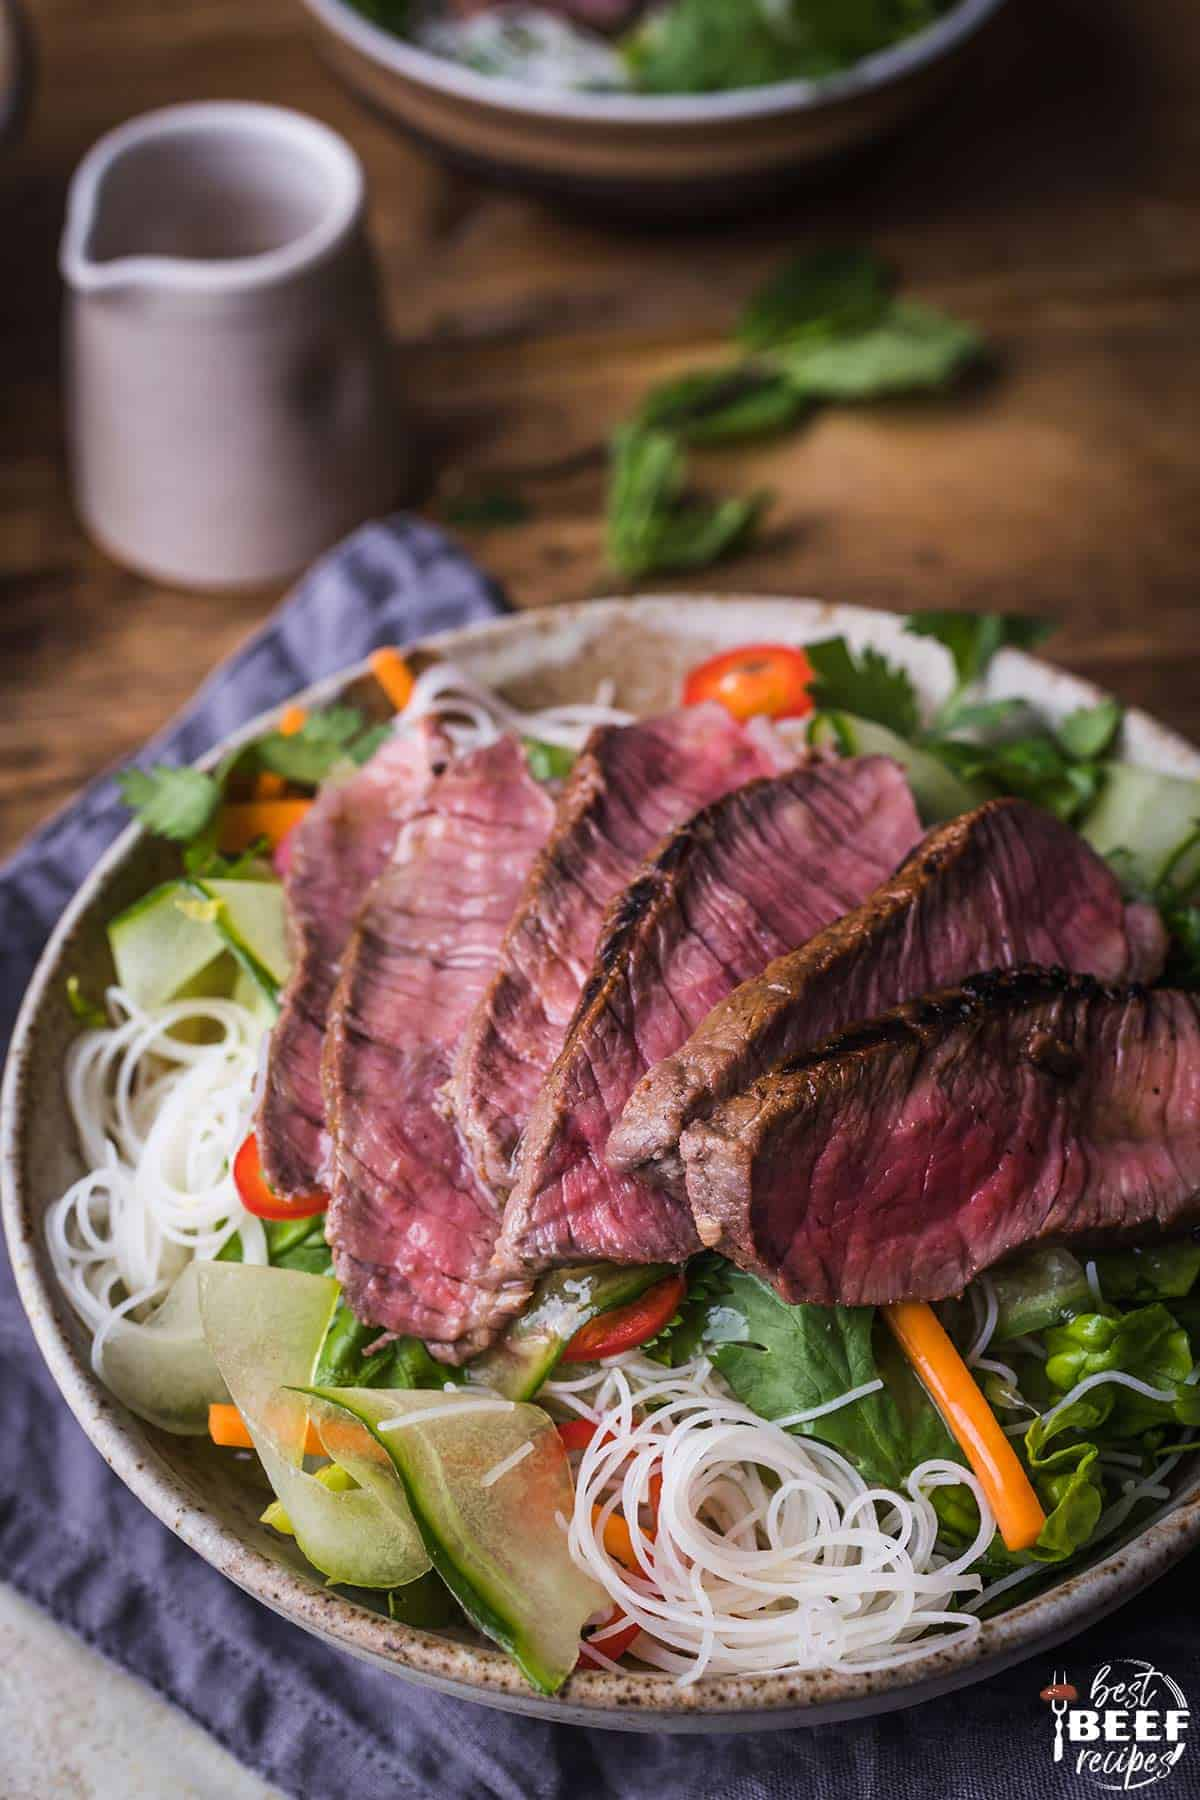 A bowl of steak salad with Vietnamese salad dressing and rice noodles